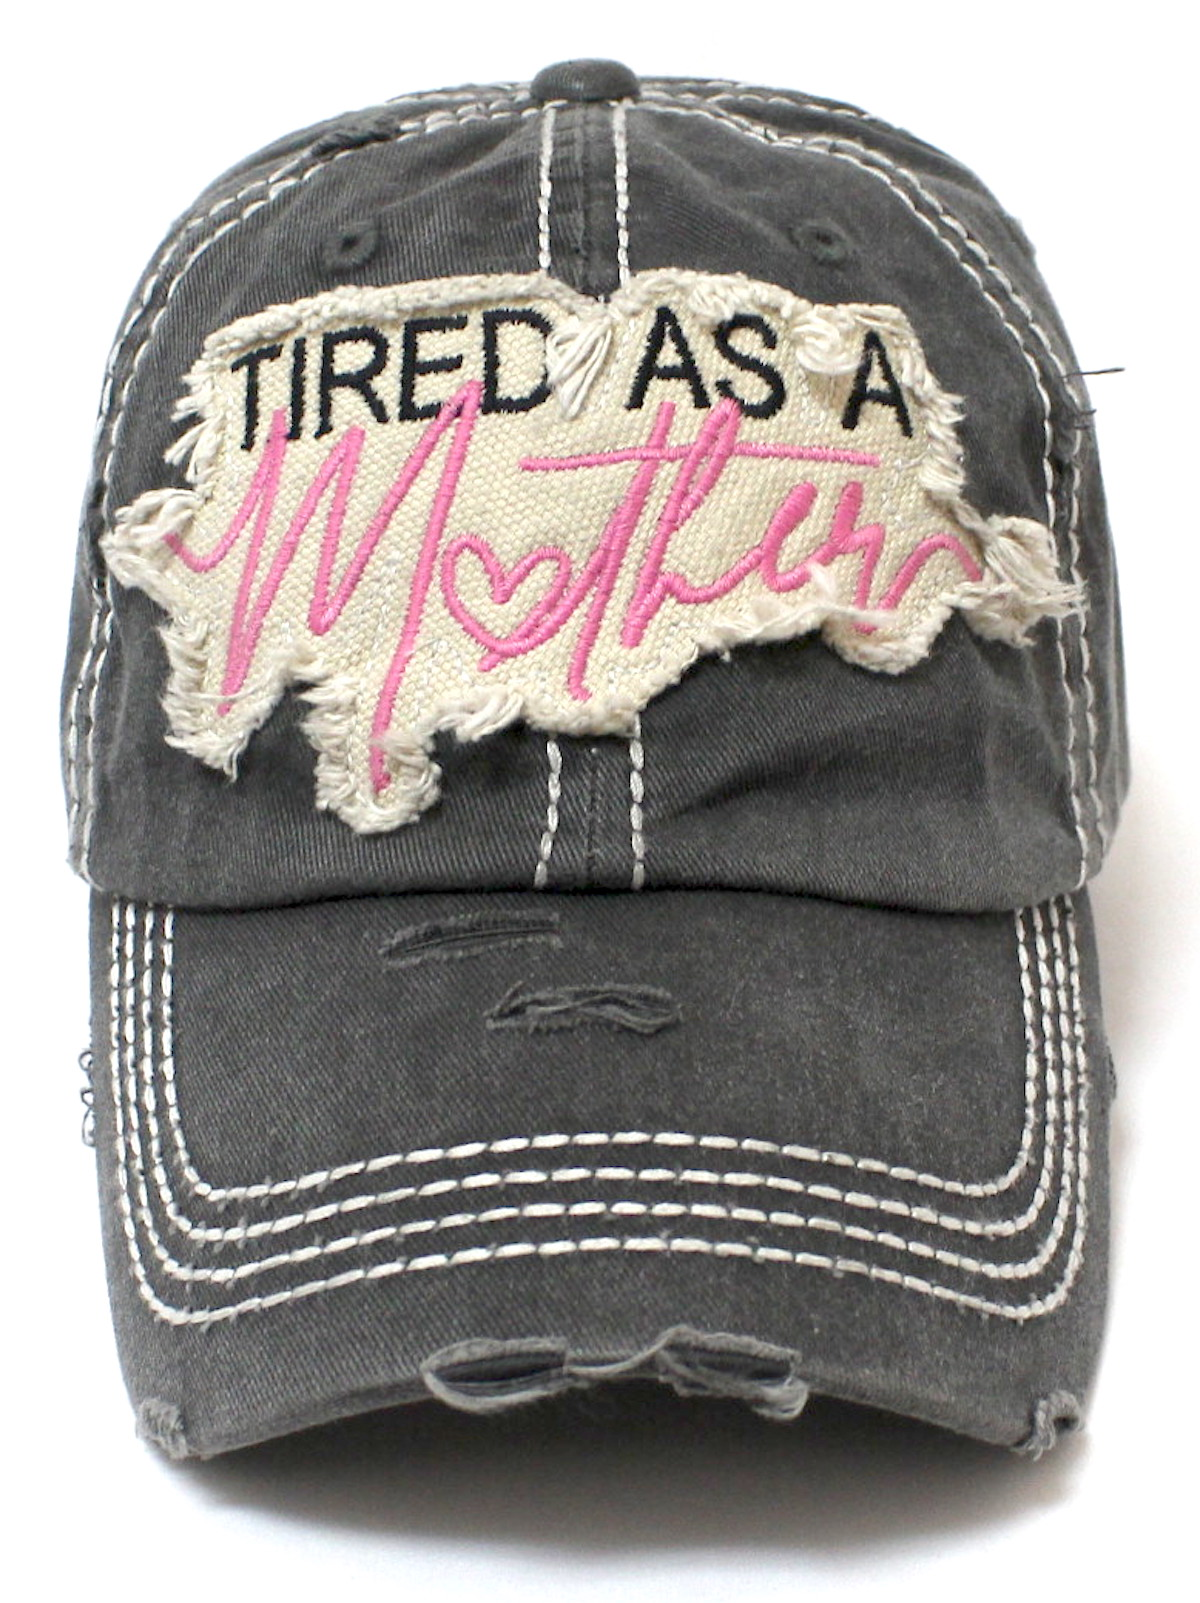 TiredMother_Bla_Front.JPG